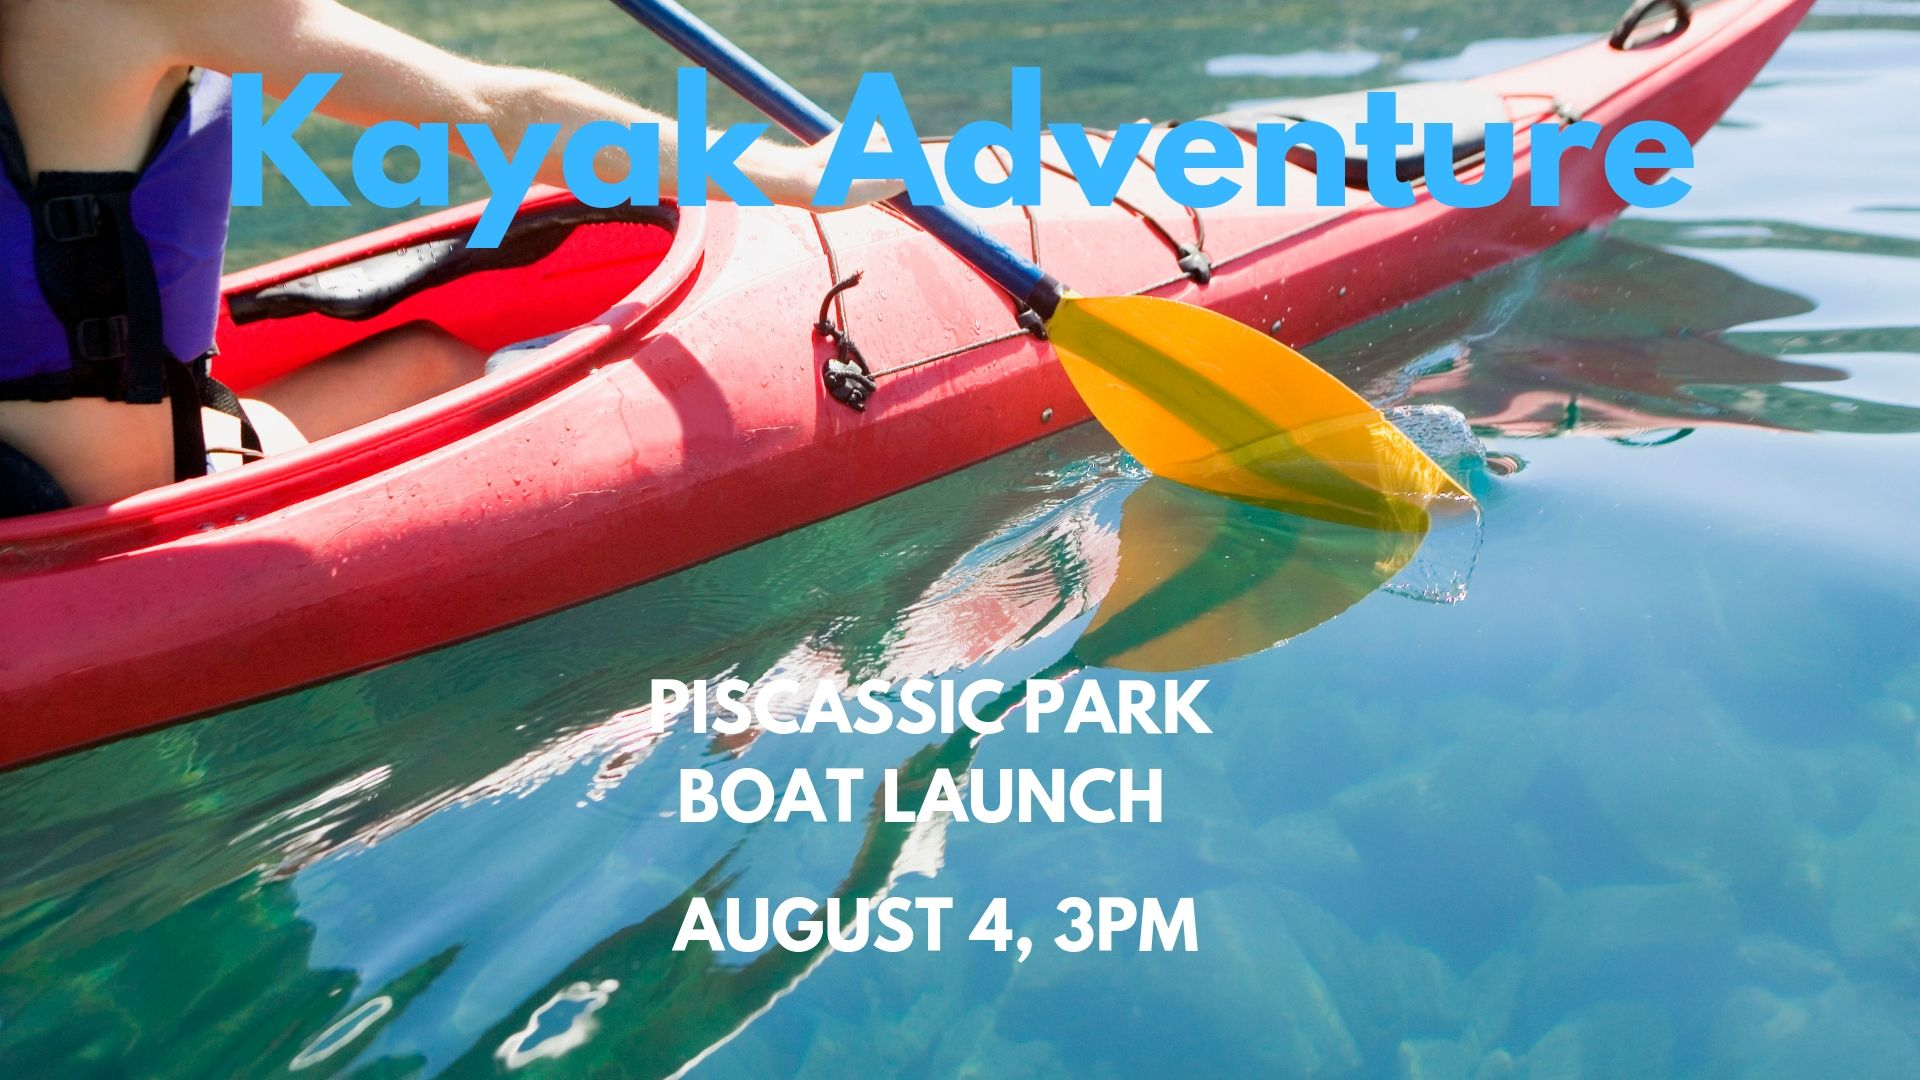 BRING YOUR KAYAK ALONG AND JOIN US FOR AN AFTERNOON PADDLE ON THE PISCASSIC RIVER. WE WILL MEET AT THE BOAT LAUNCH AT 3PM. FOR MORE DETAILS AND TO RSVP VISIT OUR FACEBOOK EVENT.  CLICK HERE  TO GO TO OUR PAGE.